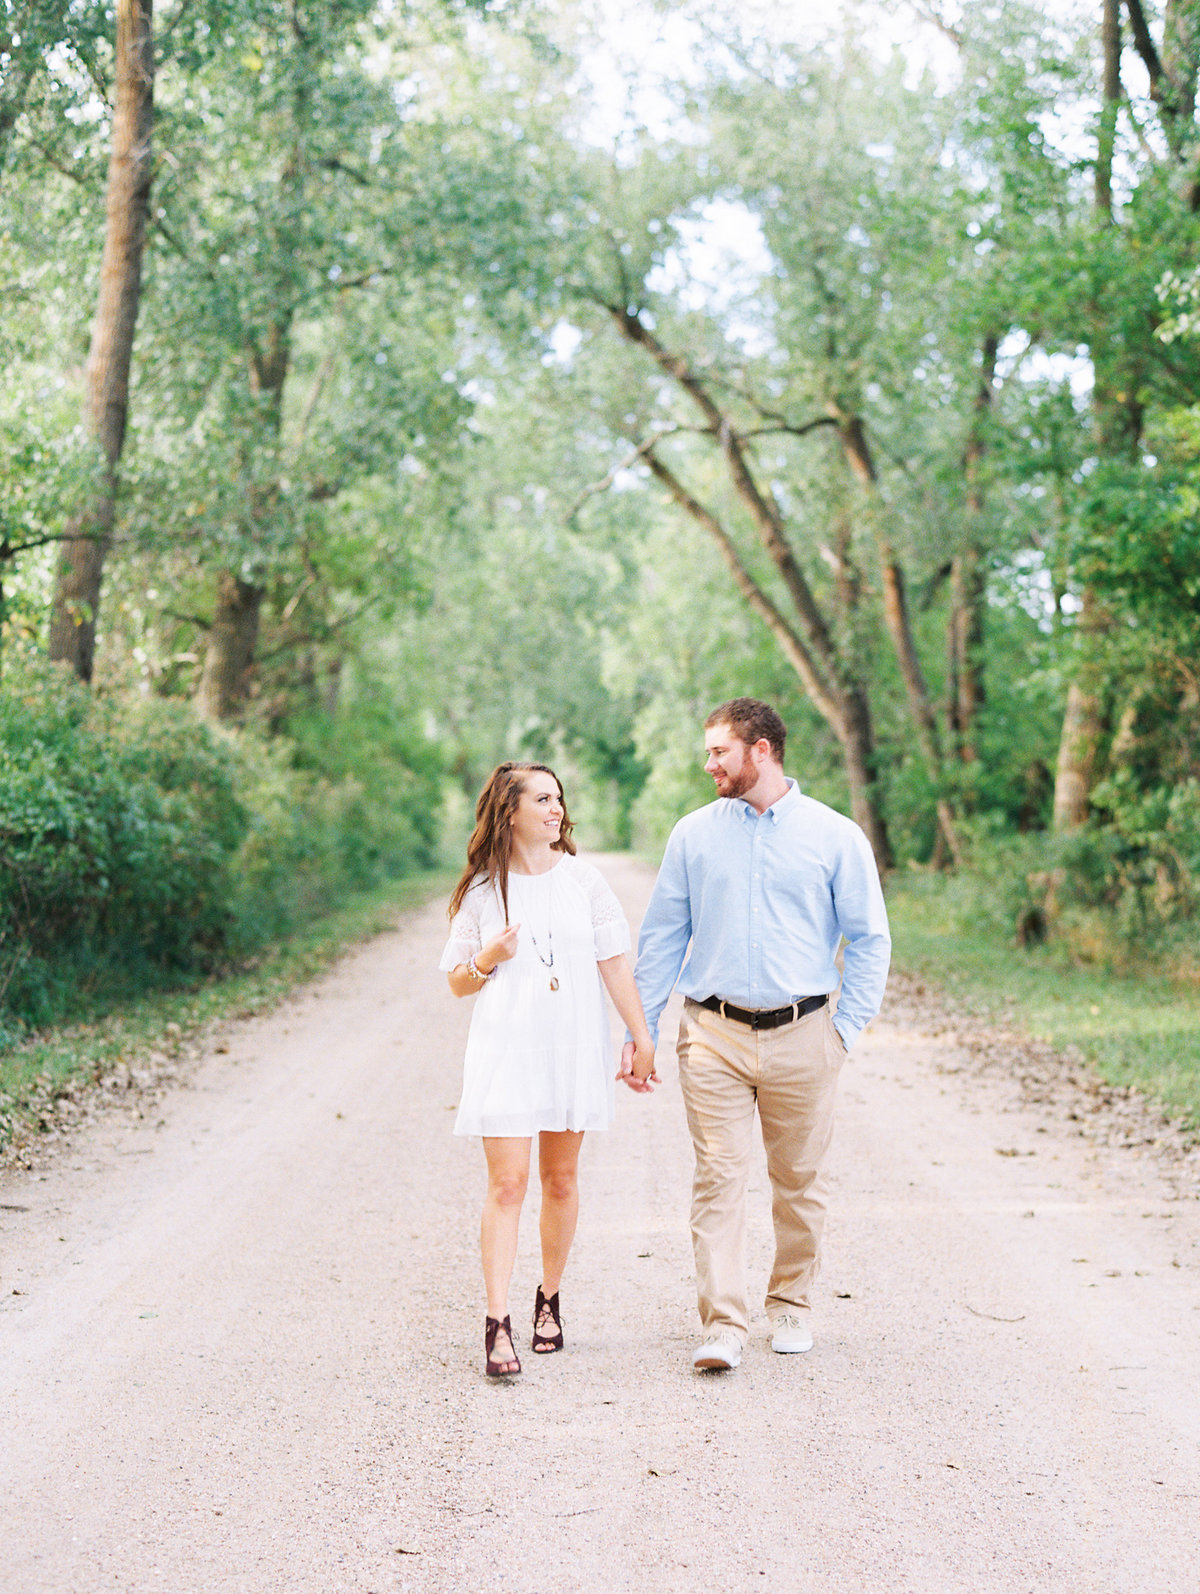 91 - © 2018 Ashley Nicole Photography - Summer + Beau Engagement